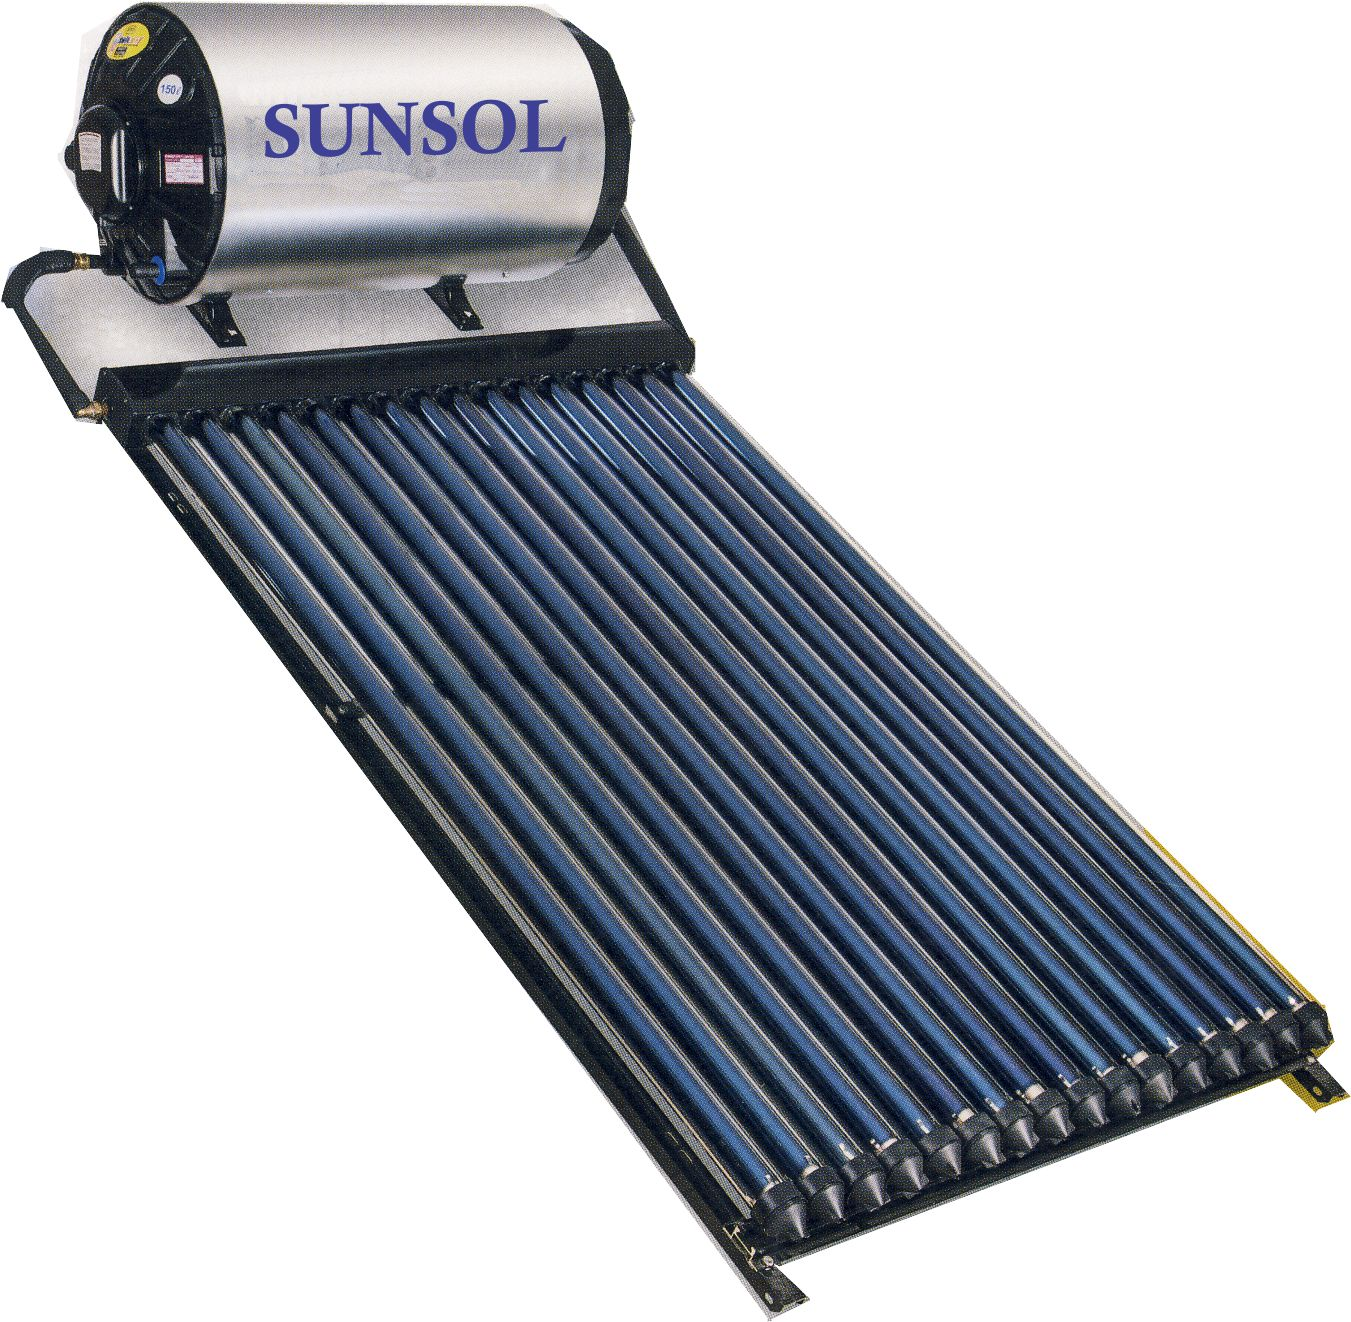 sunsol high pressure solar geyser